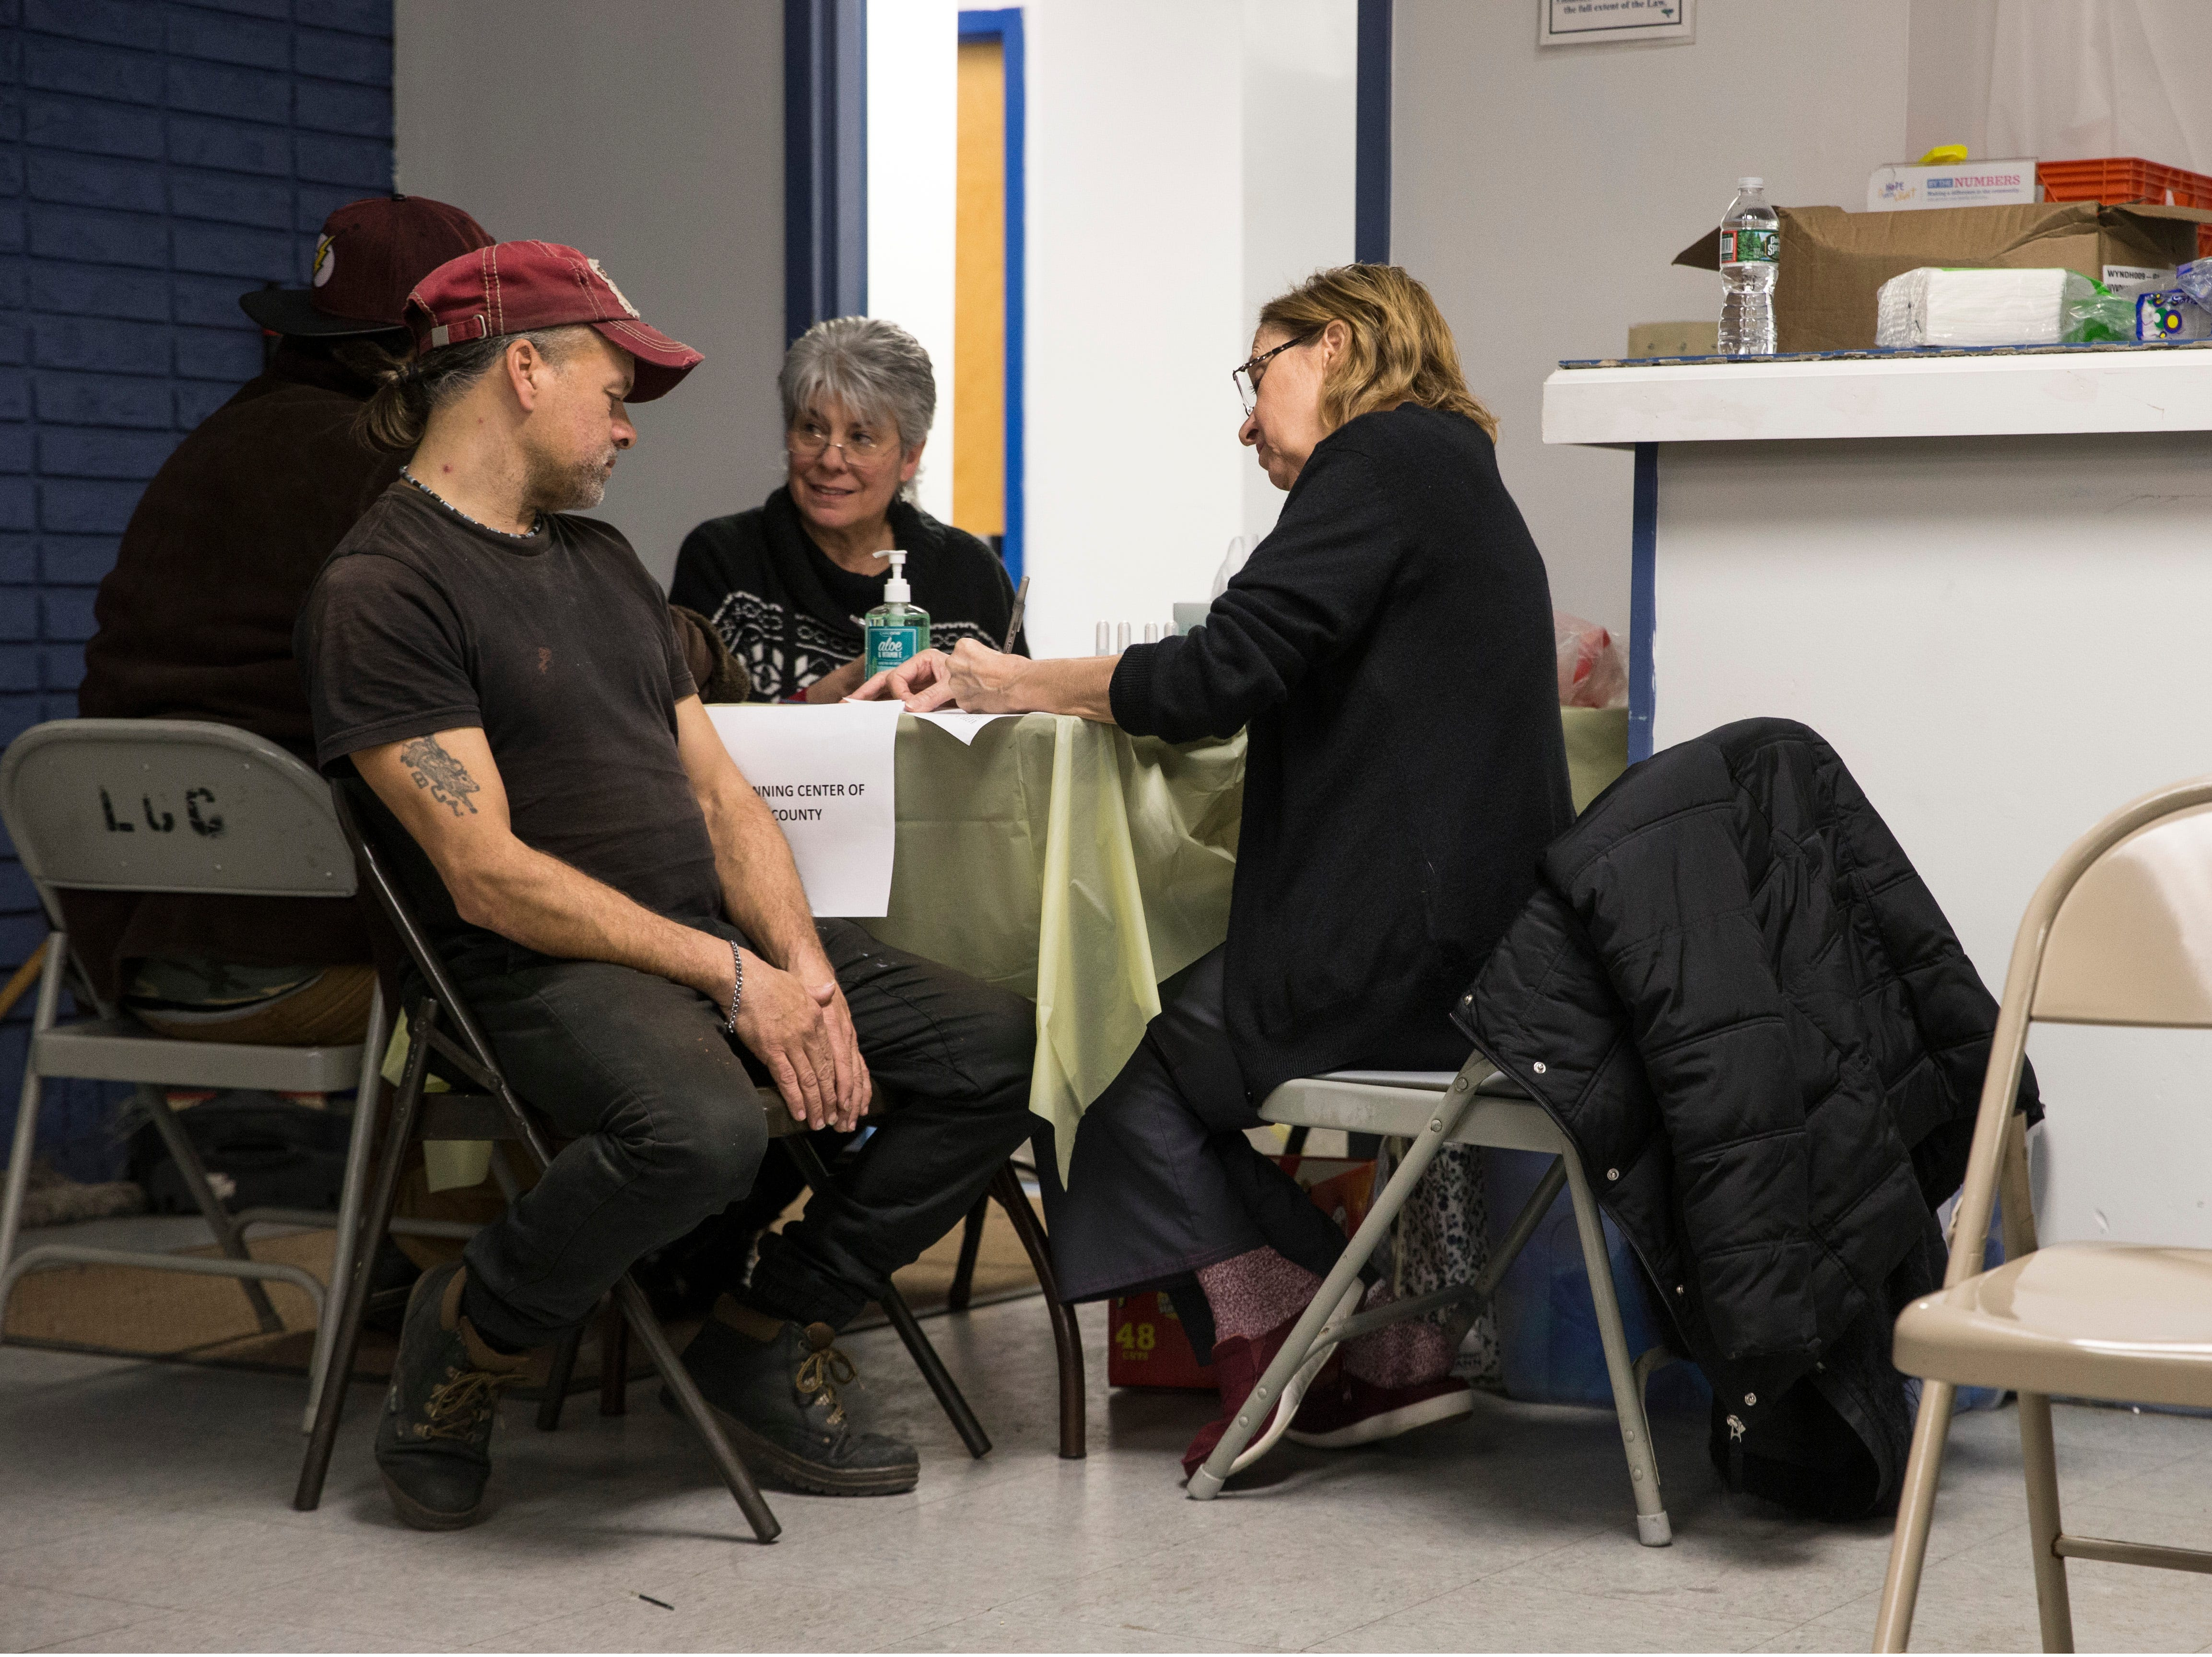 Billy Mills checks in to get help with his situation. New Jersey housing advocates conduct the state's annual NJCounts, a point-in-time count of homelessness.       Lakewood, NJWednesday, January 23, 2019